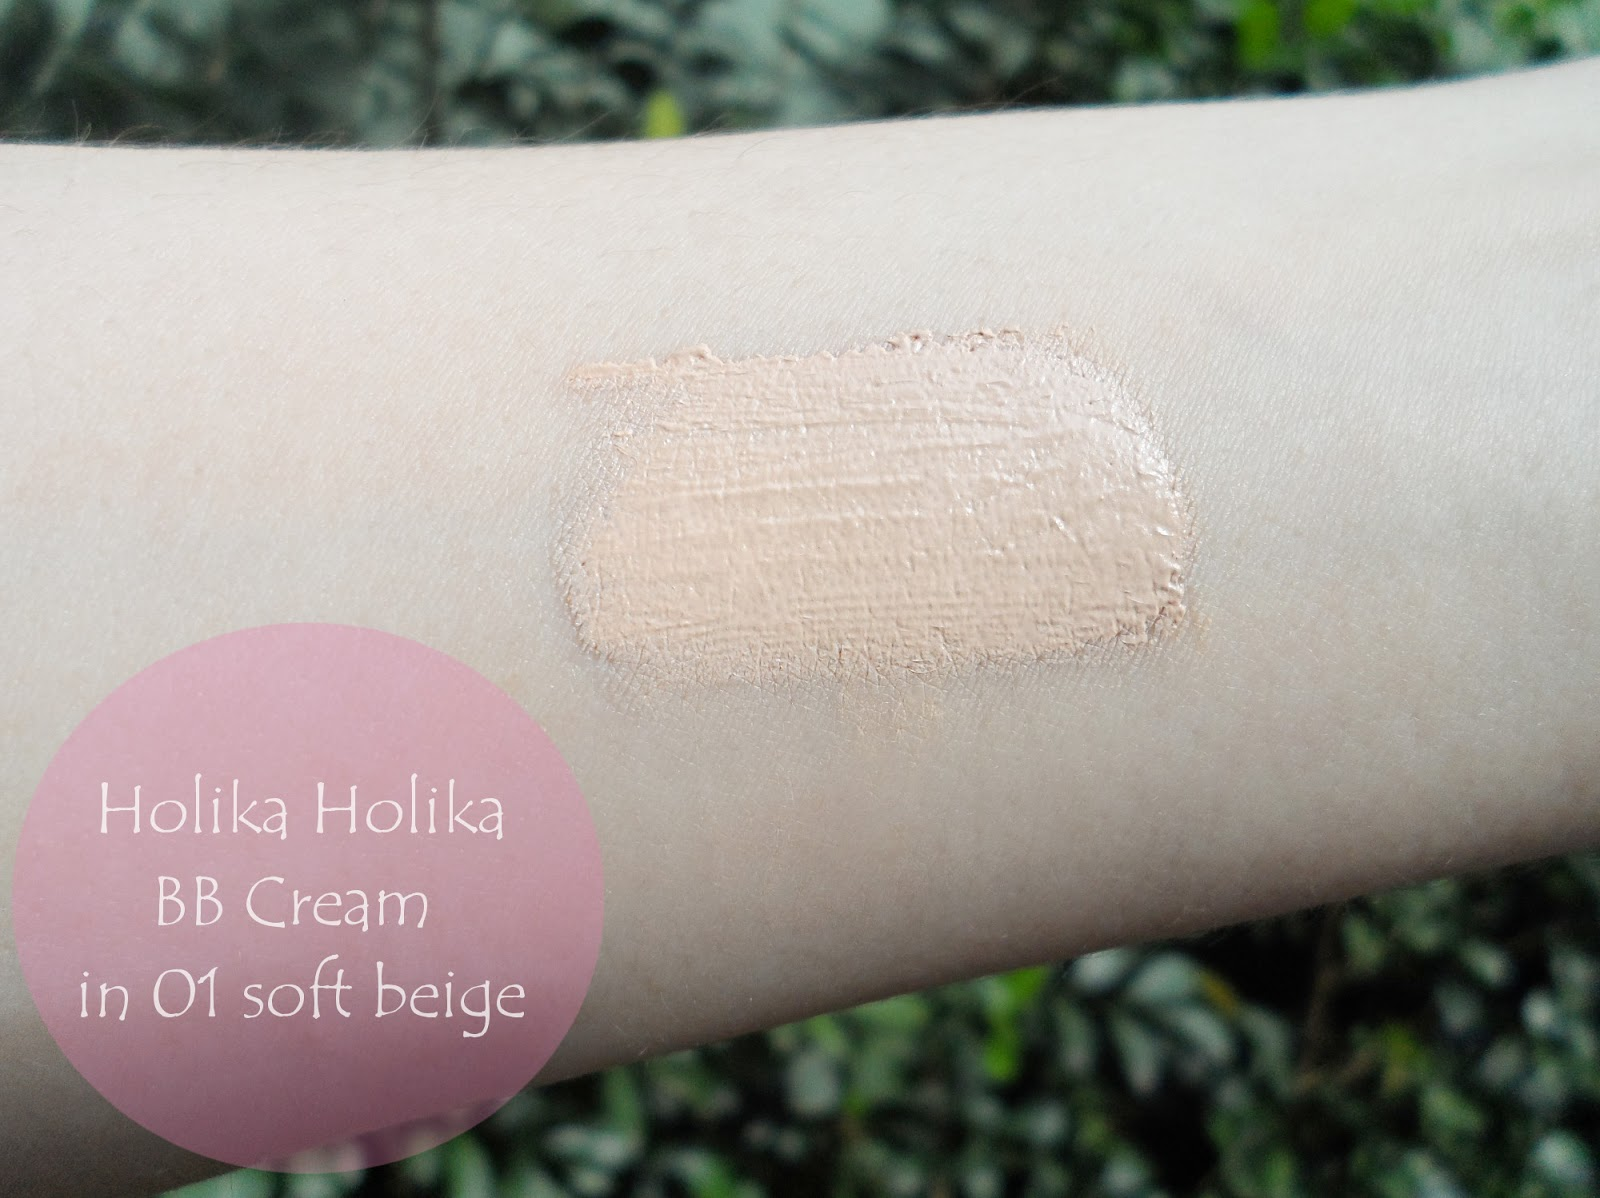 bb cream holika holika review blogger swatches liz breygel january girl korean makeup w2beauty store